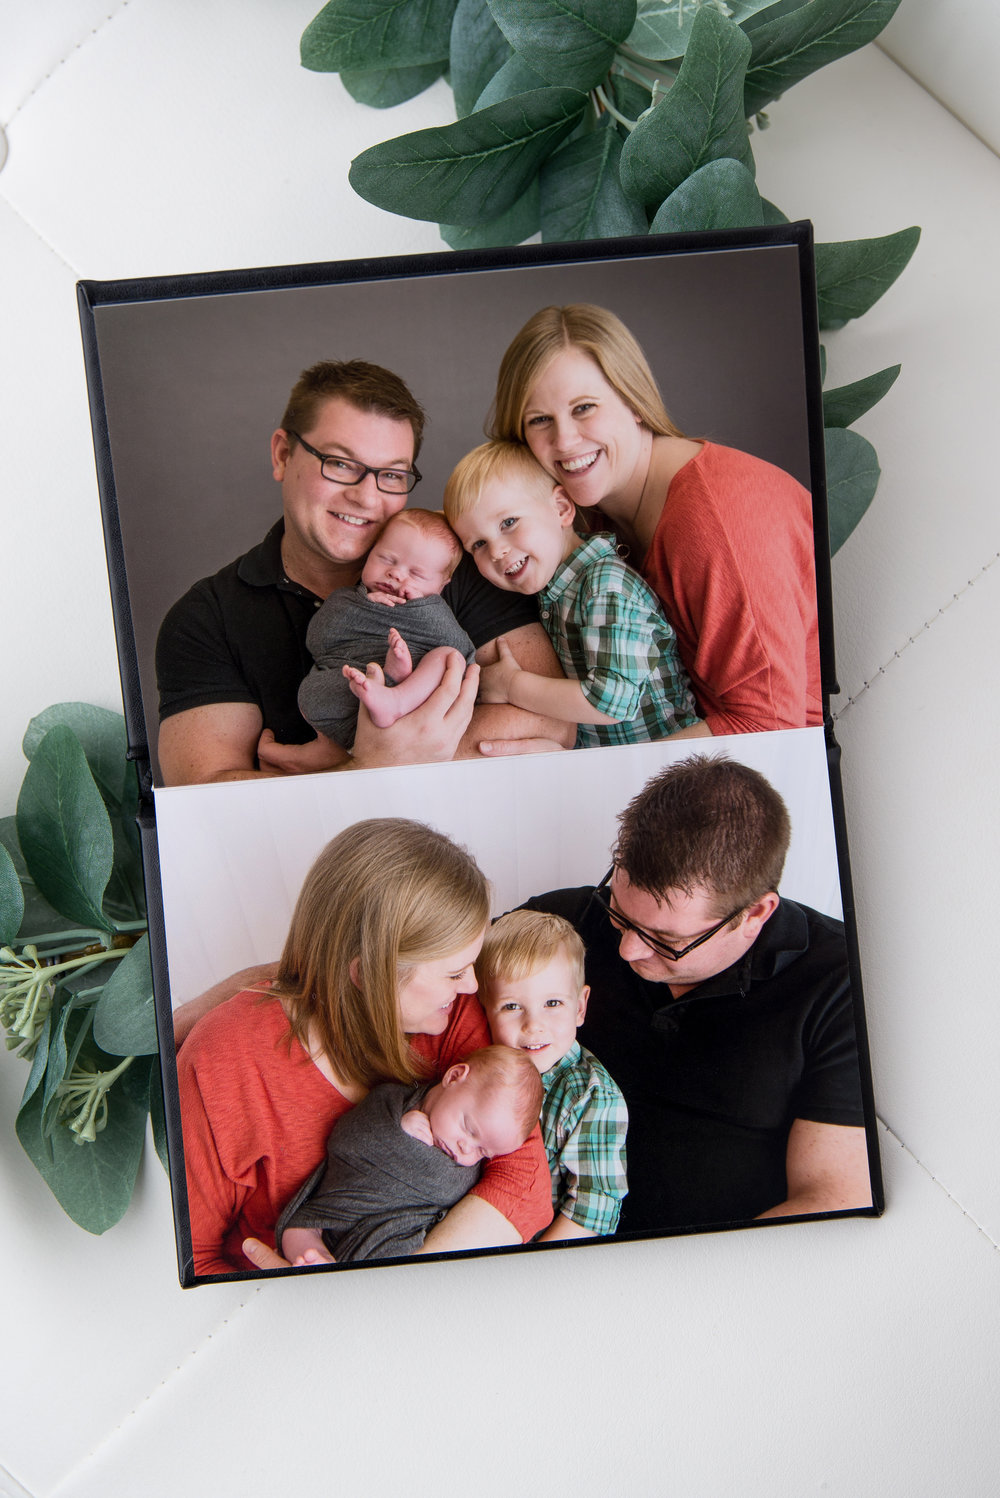 st-louis-photographer-the-session-book-in-side-family-and-newborn-images.jpg